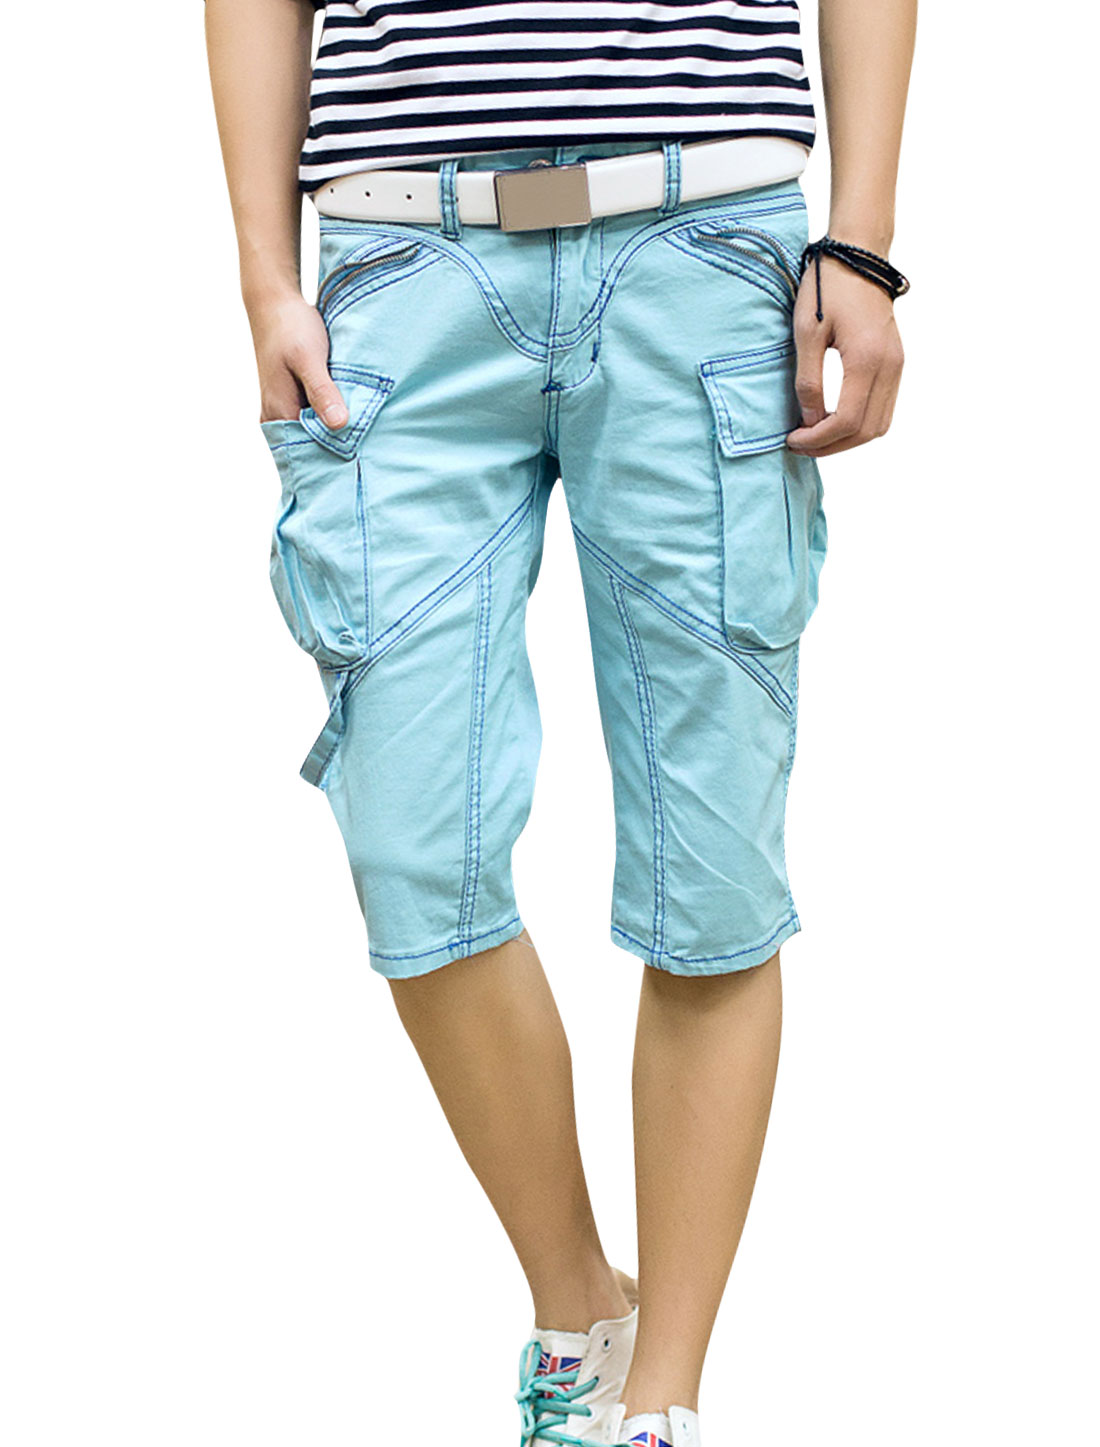 Men Casual Belt Loop Zip Fly Zipper Decor Cargo Shorts Sky Blue W30